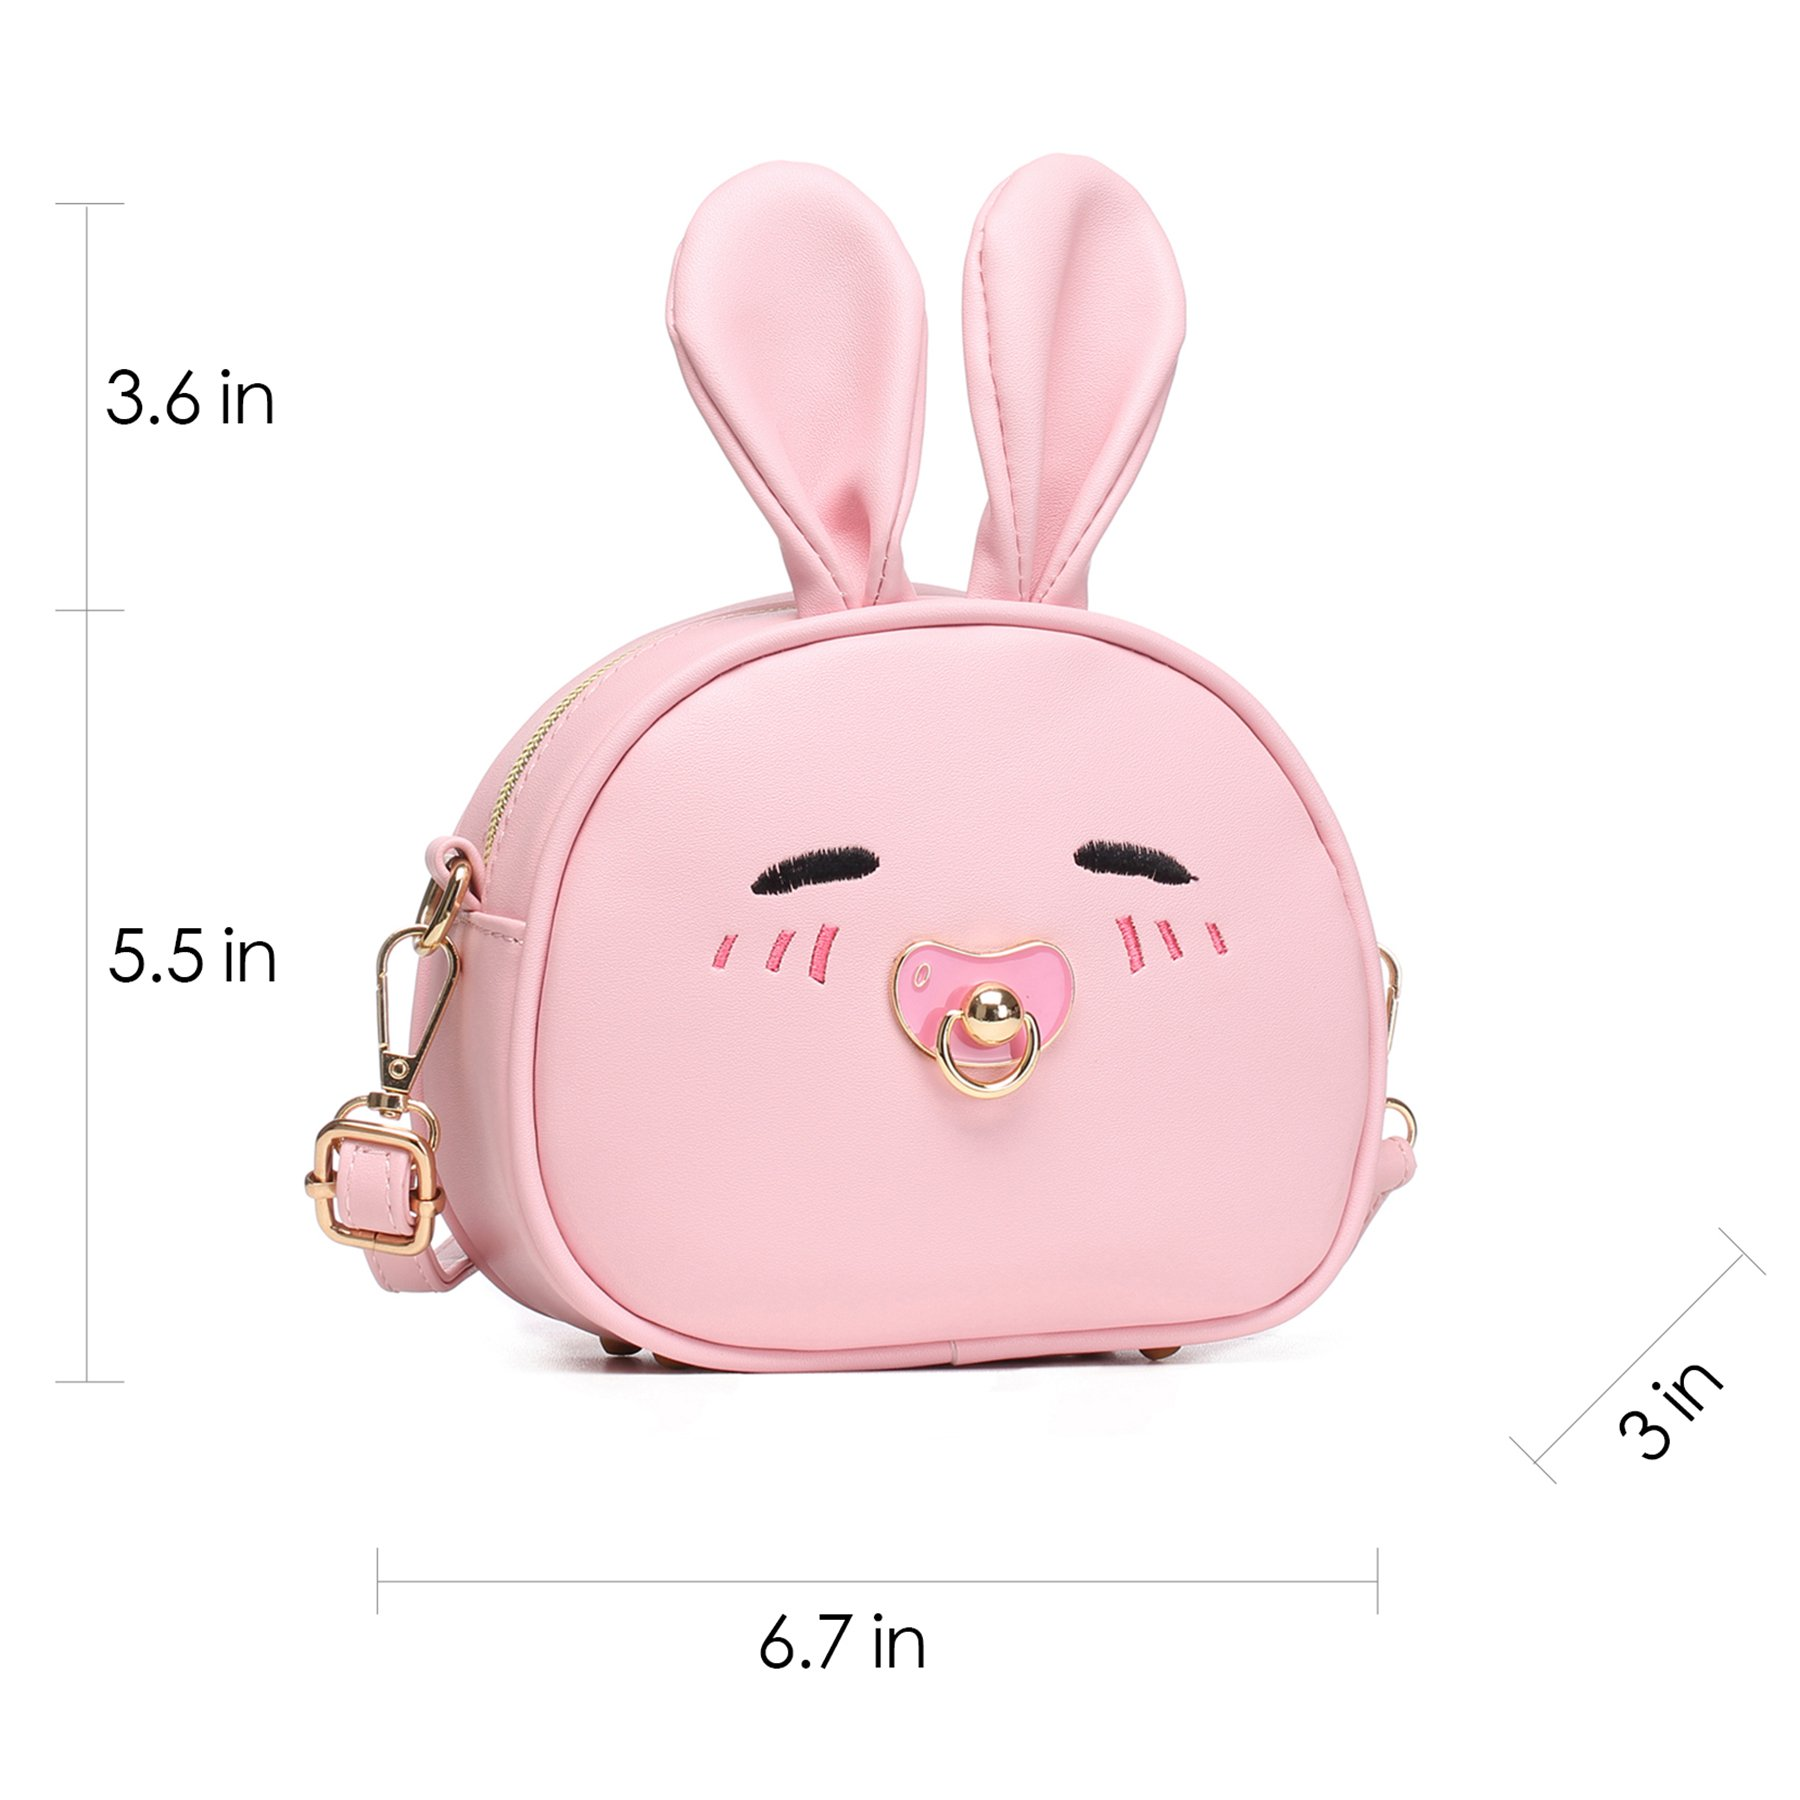 CMK Trendy Kids My First Purse for Toddler Kids Girls Cute Shoulder Bag Messenger Bags with Bunny Ear and Double Slide Zipper Novelty Birthday Gift (82011_Pink) by CMK Trendy Kids (Image #4)